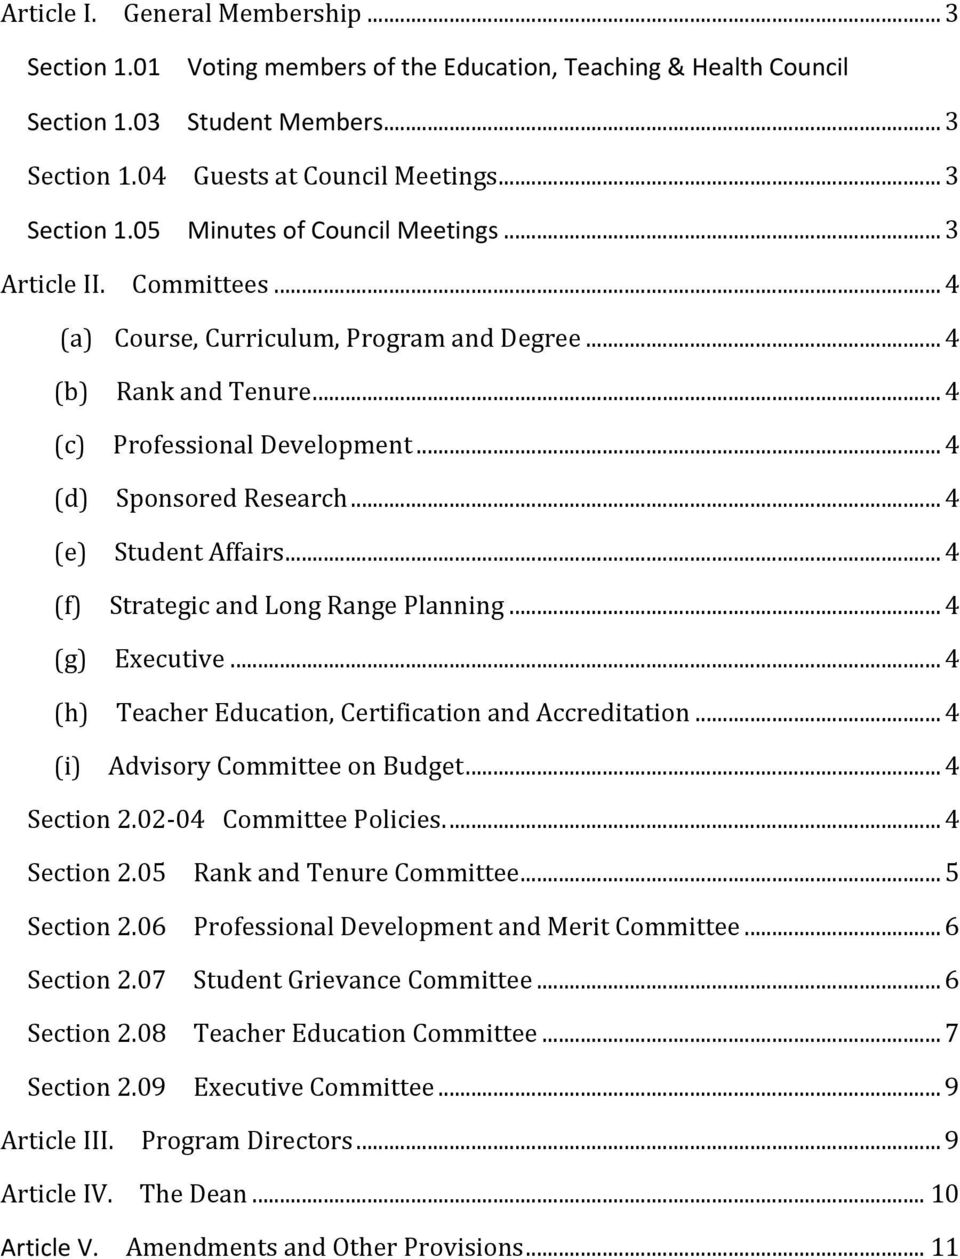 .. 4 Sponsored Research... 4 Student Affairs... 4 Strategic and Long Range Planning... 4 Executive... 4 Teacher Education, Certification and Accreditation... 4 Advisory Committee on Budget.